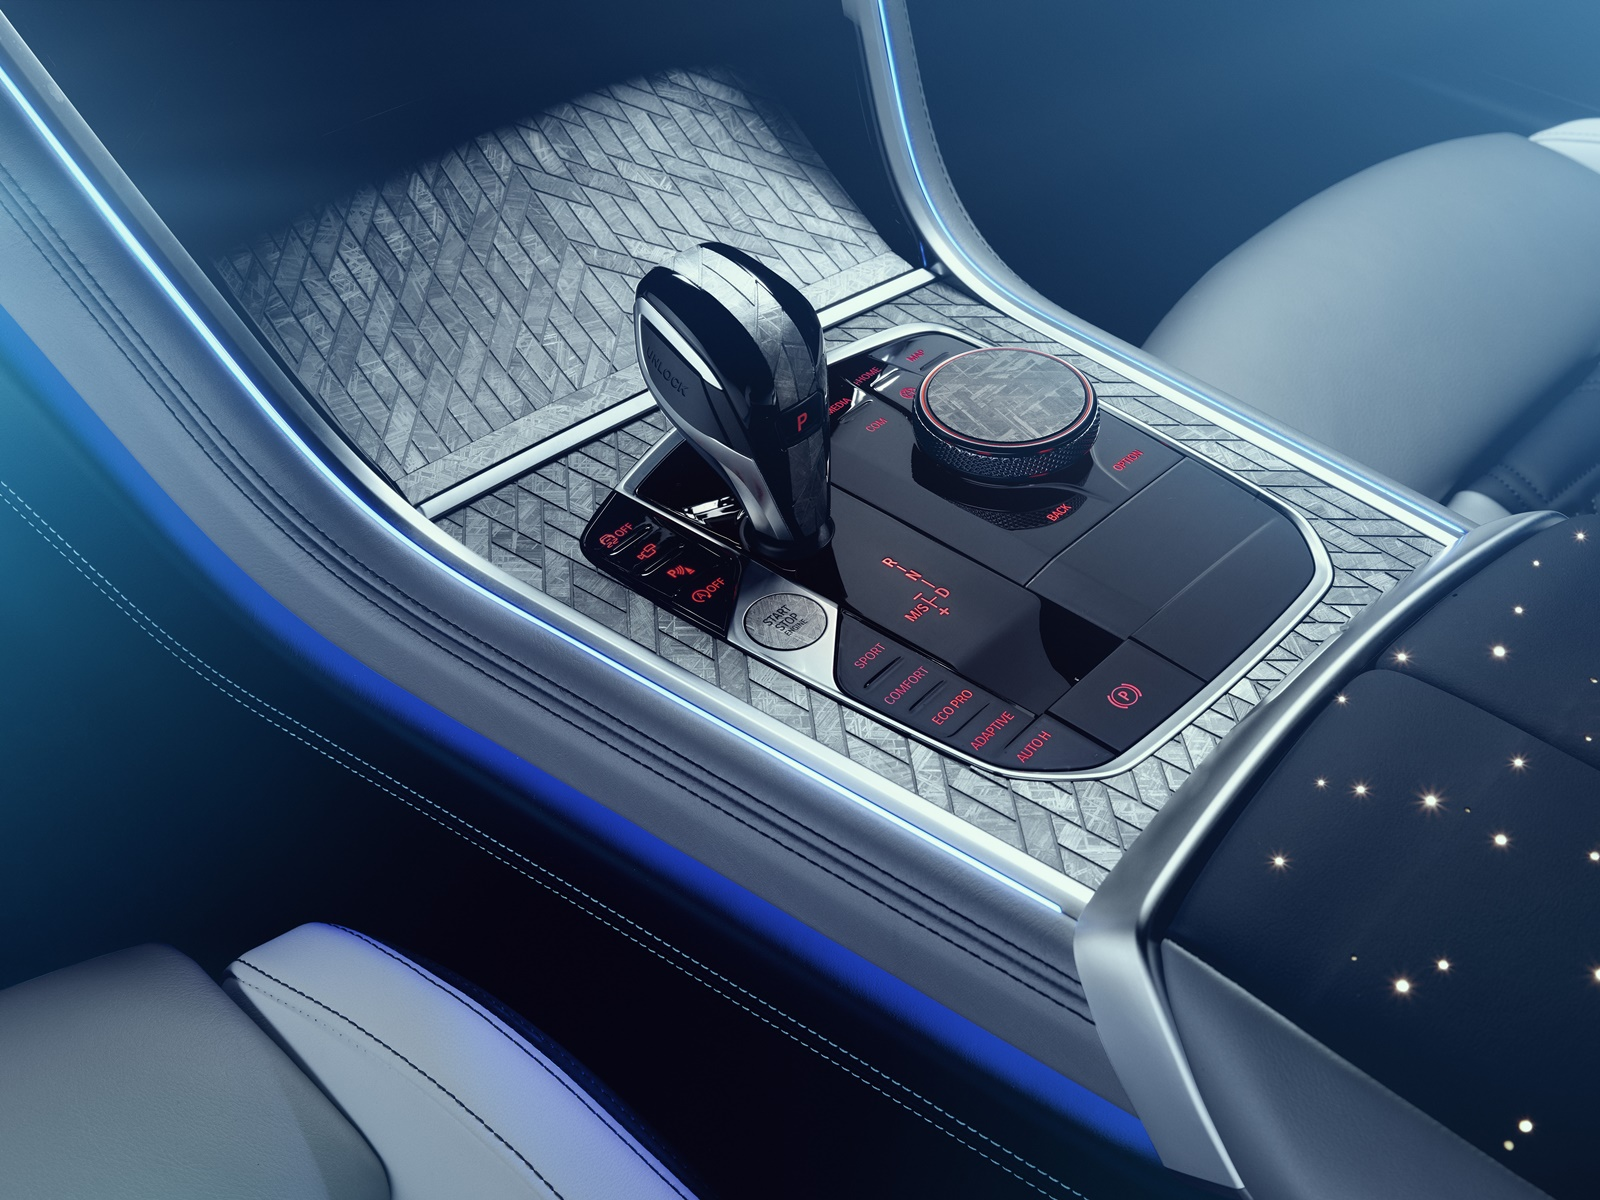 The BMW Individual M850i Night Sky interior. Photo via BMW Group.